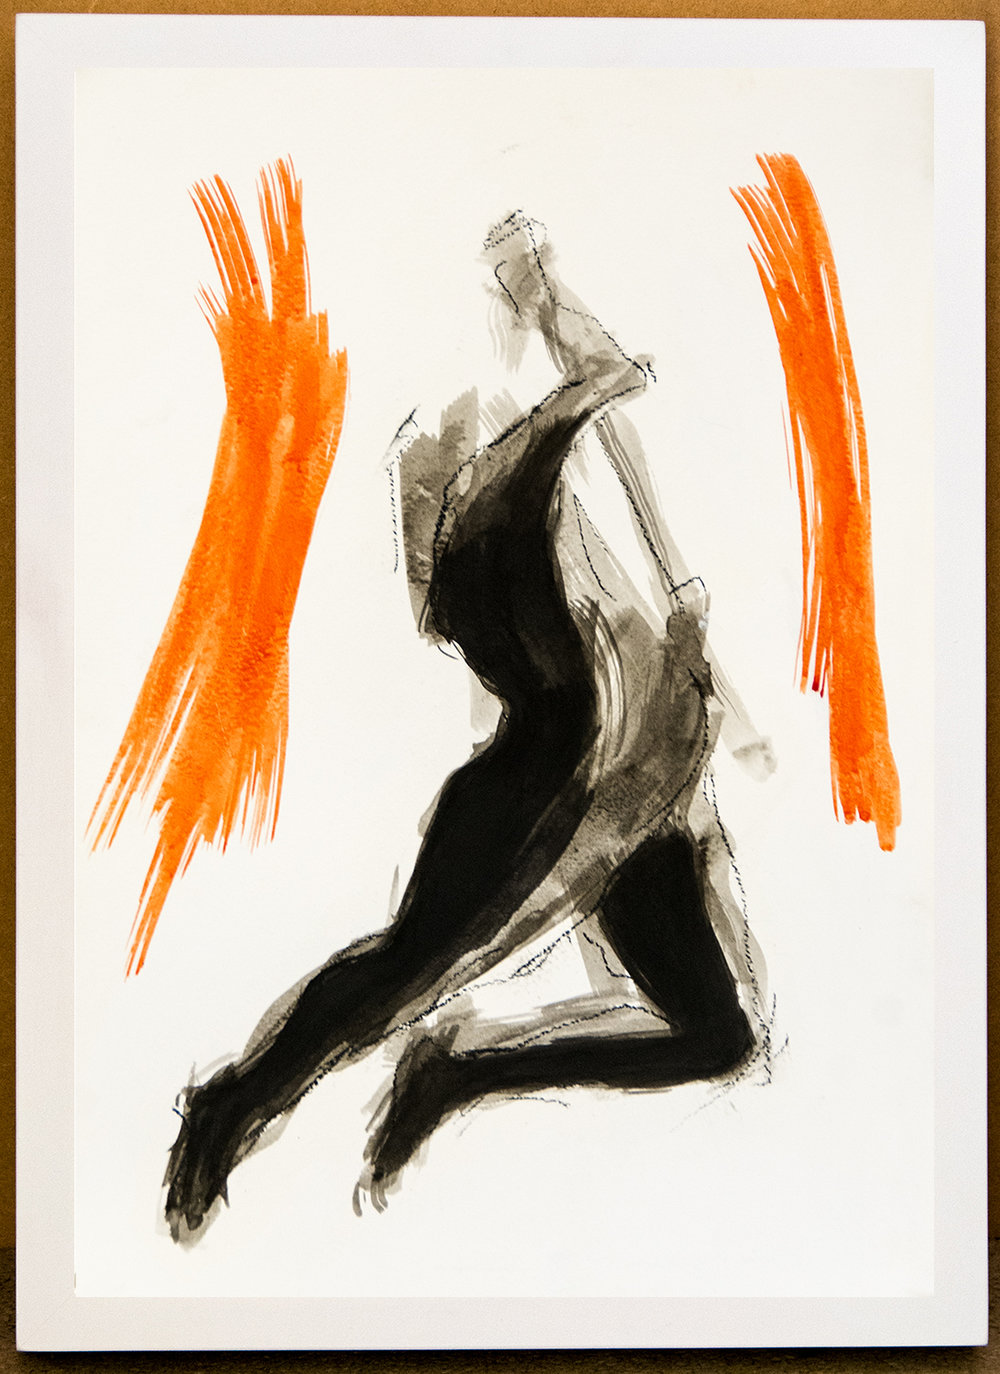 The Dance X, ink and charcoal on paper, 42x30 cm